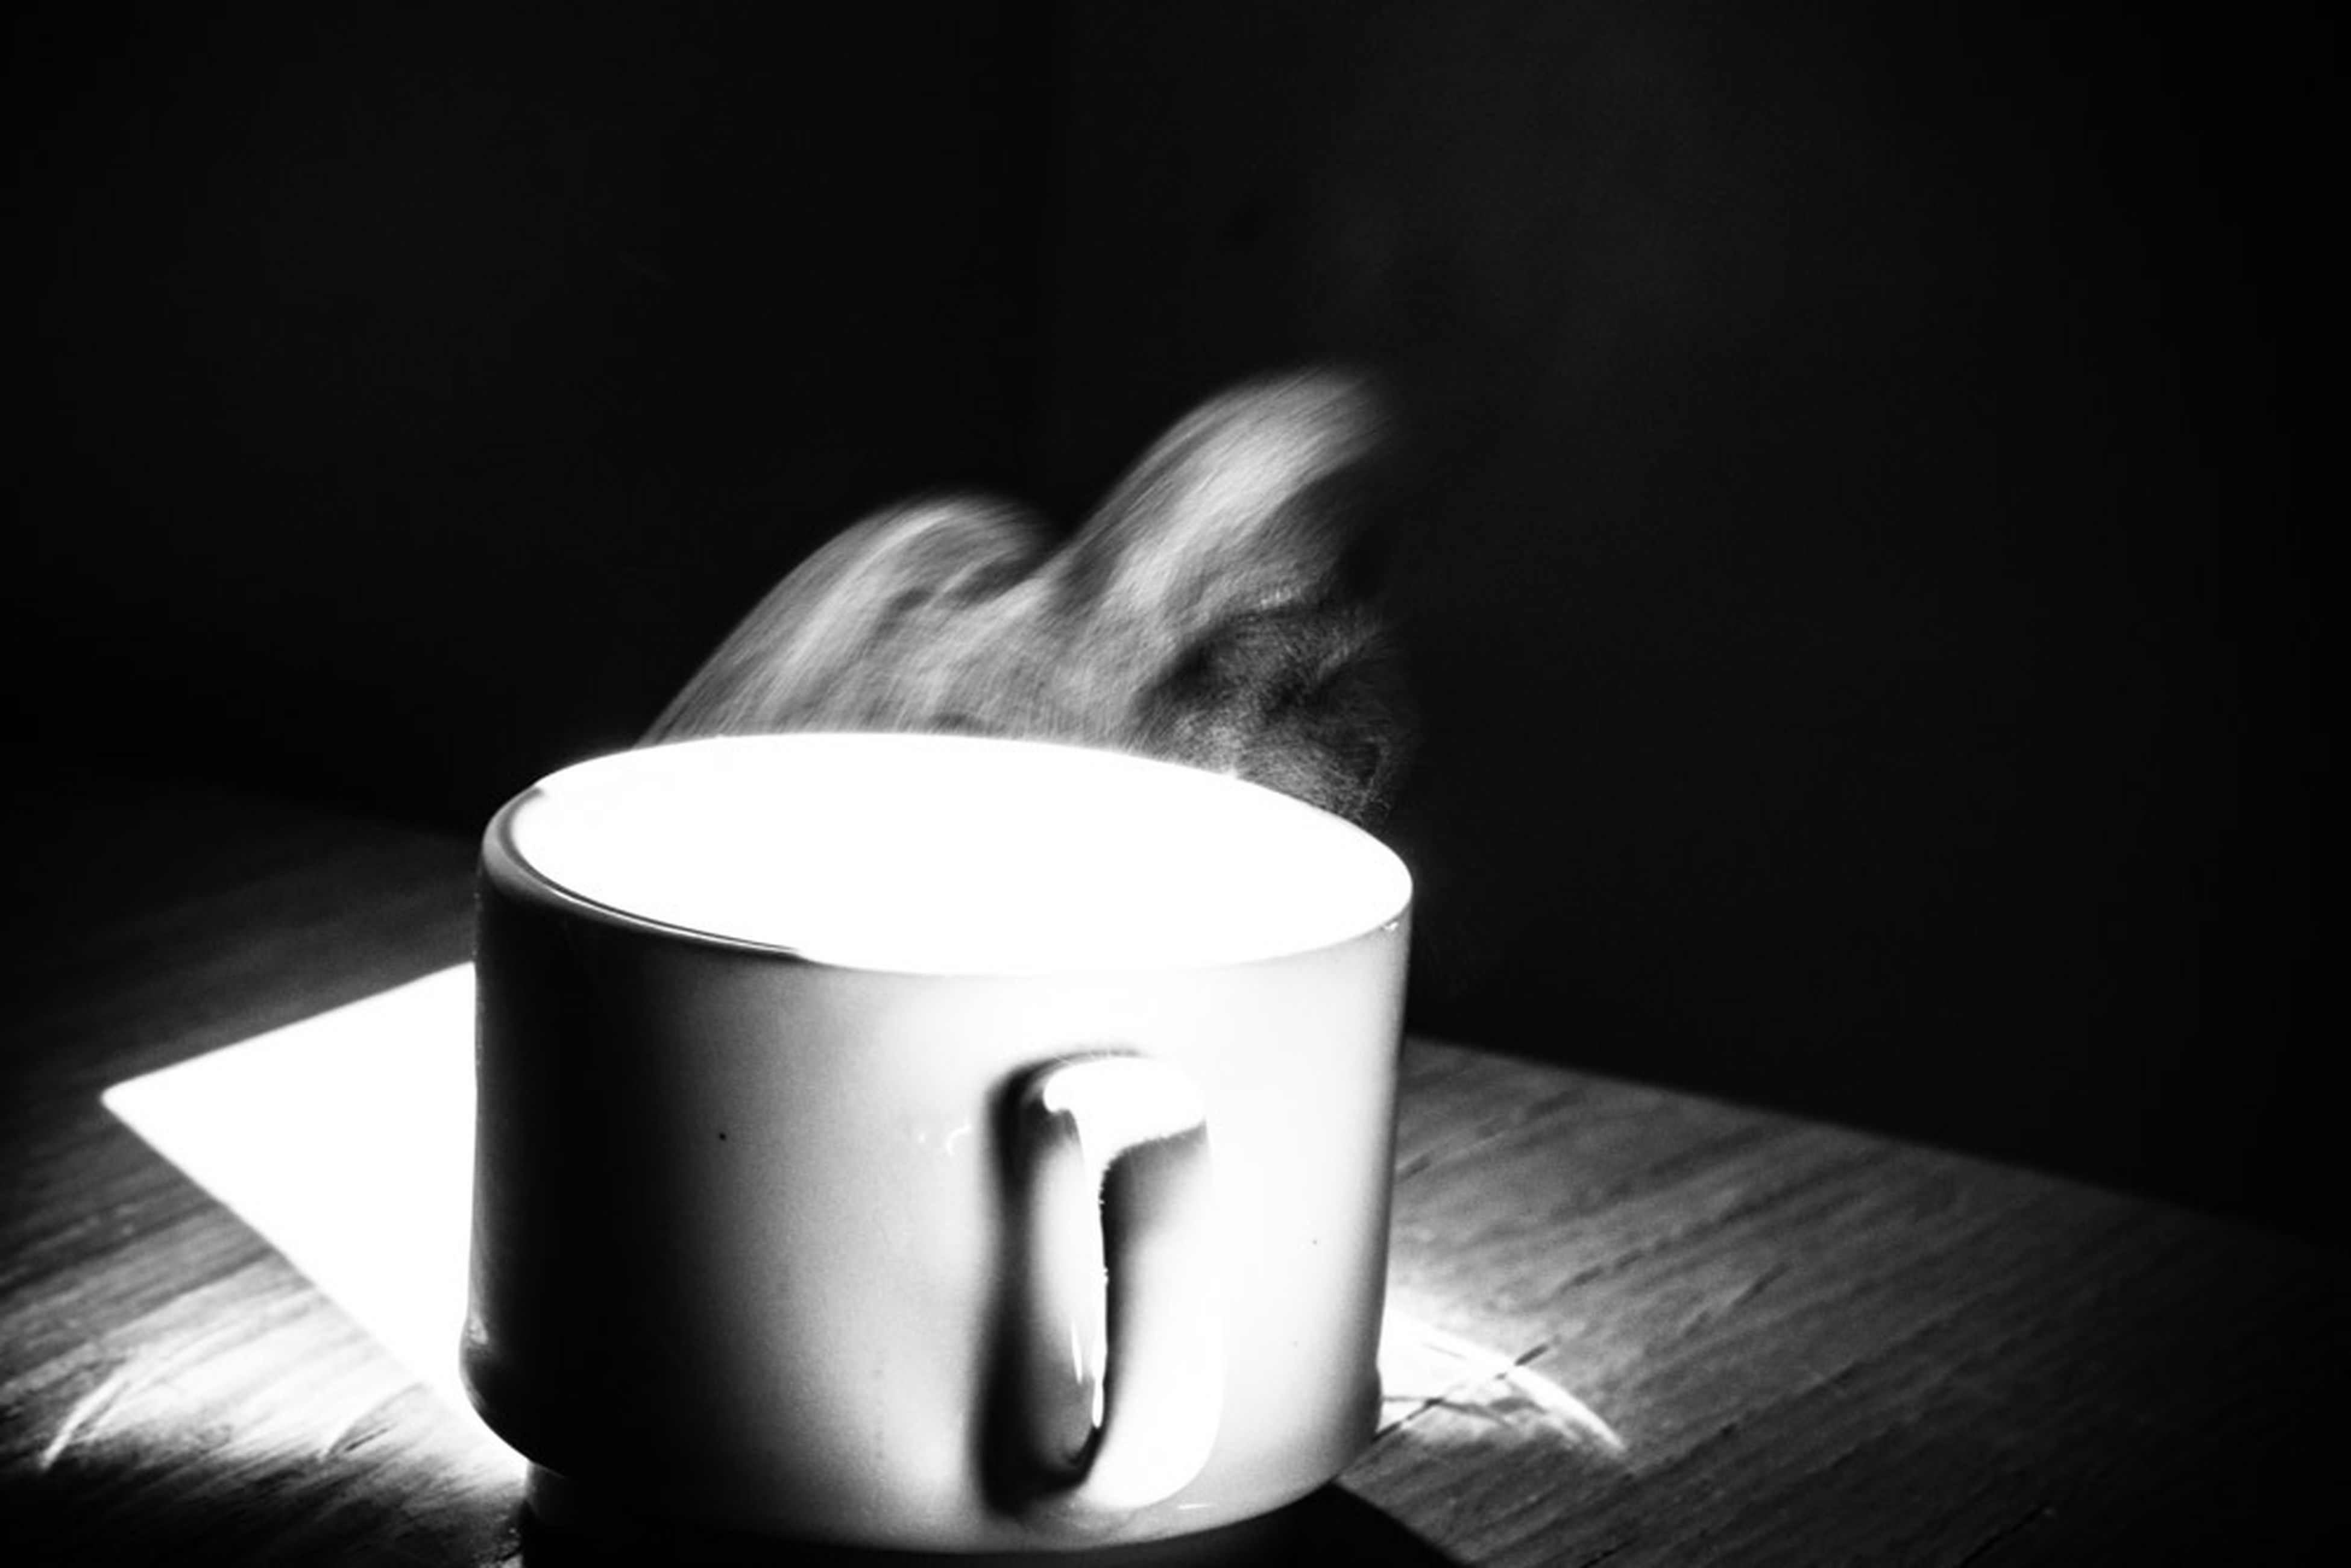 indoors, drink, food and drink, coffee cup, table, refreshment, still life, coffee - drink, close-up, coffee, freshness, cup, saucer, beverage, no people, frothy drink, candle, black background, heat - temperature, focus on foreground